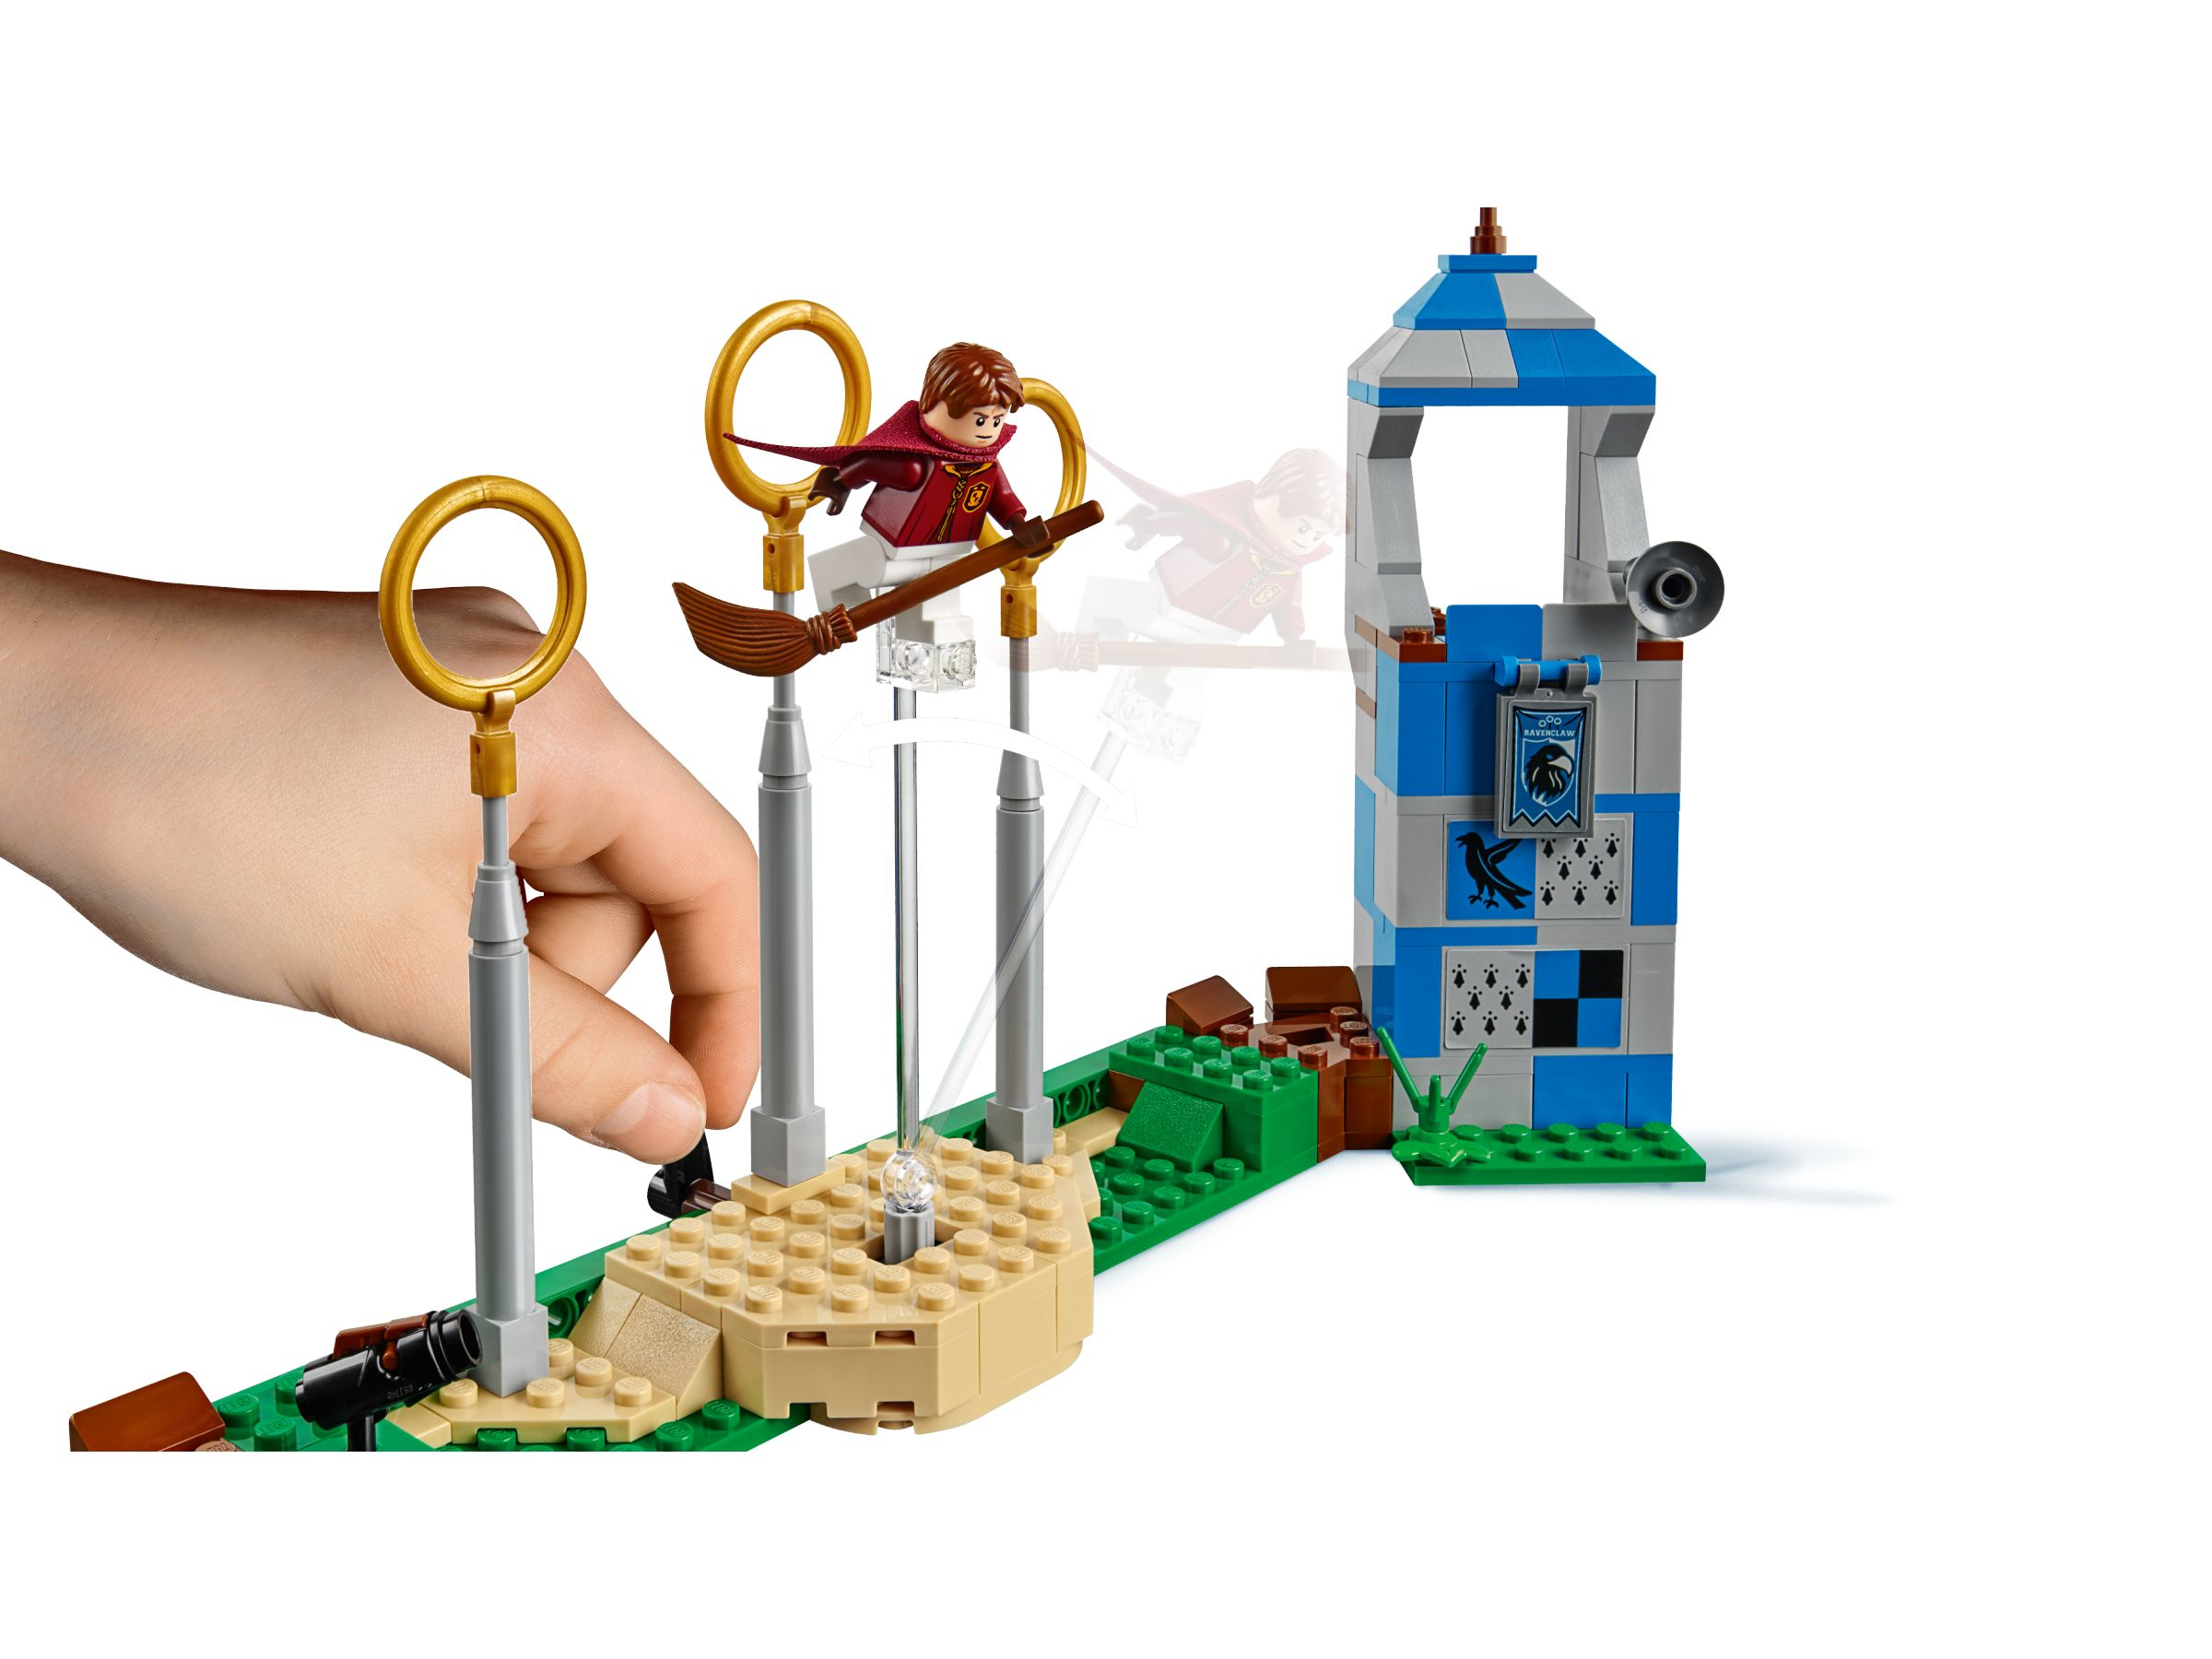 LEGO Harry Potter 75956 Quidditch™ Turnier LEGO_75956_alt4.jpg